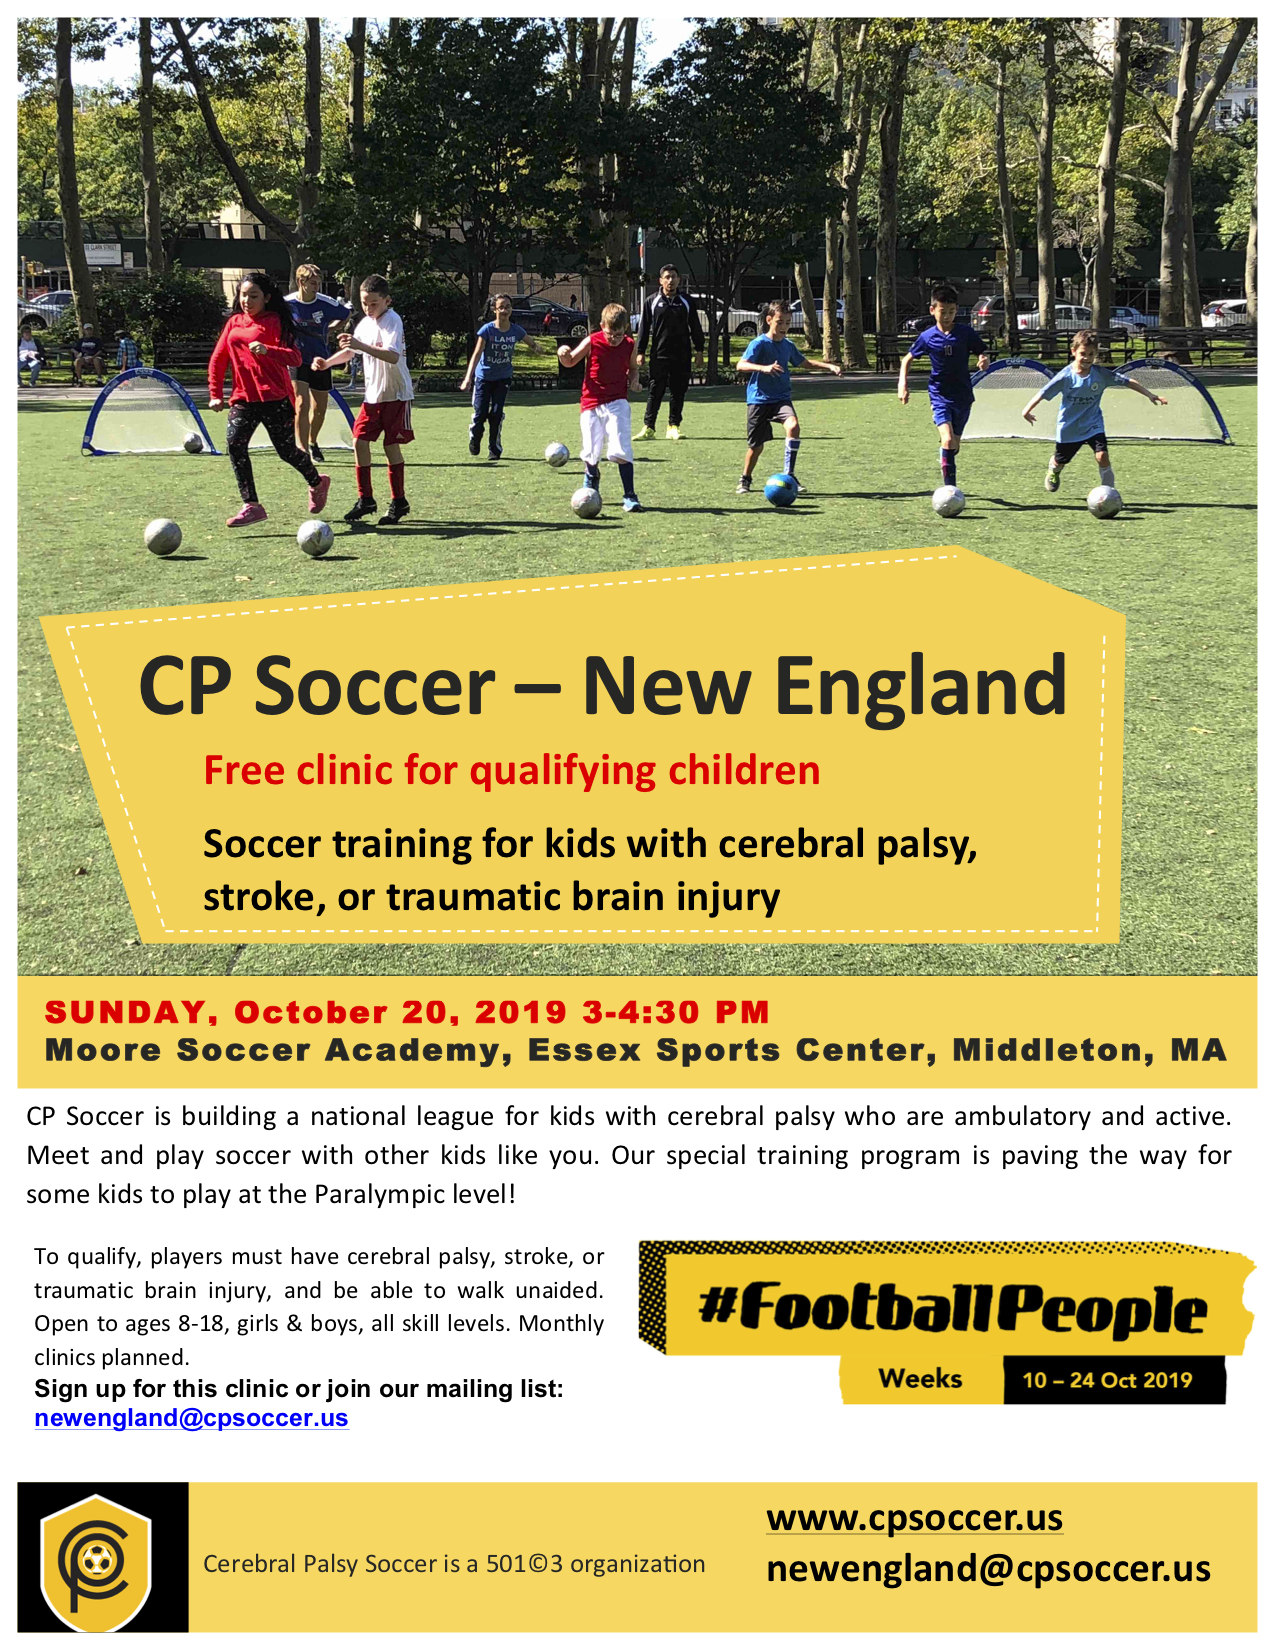 New England CP Soccer Flyer Oct 2019 footballpeople.png